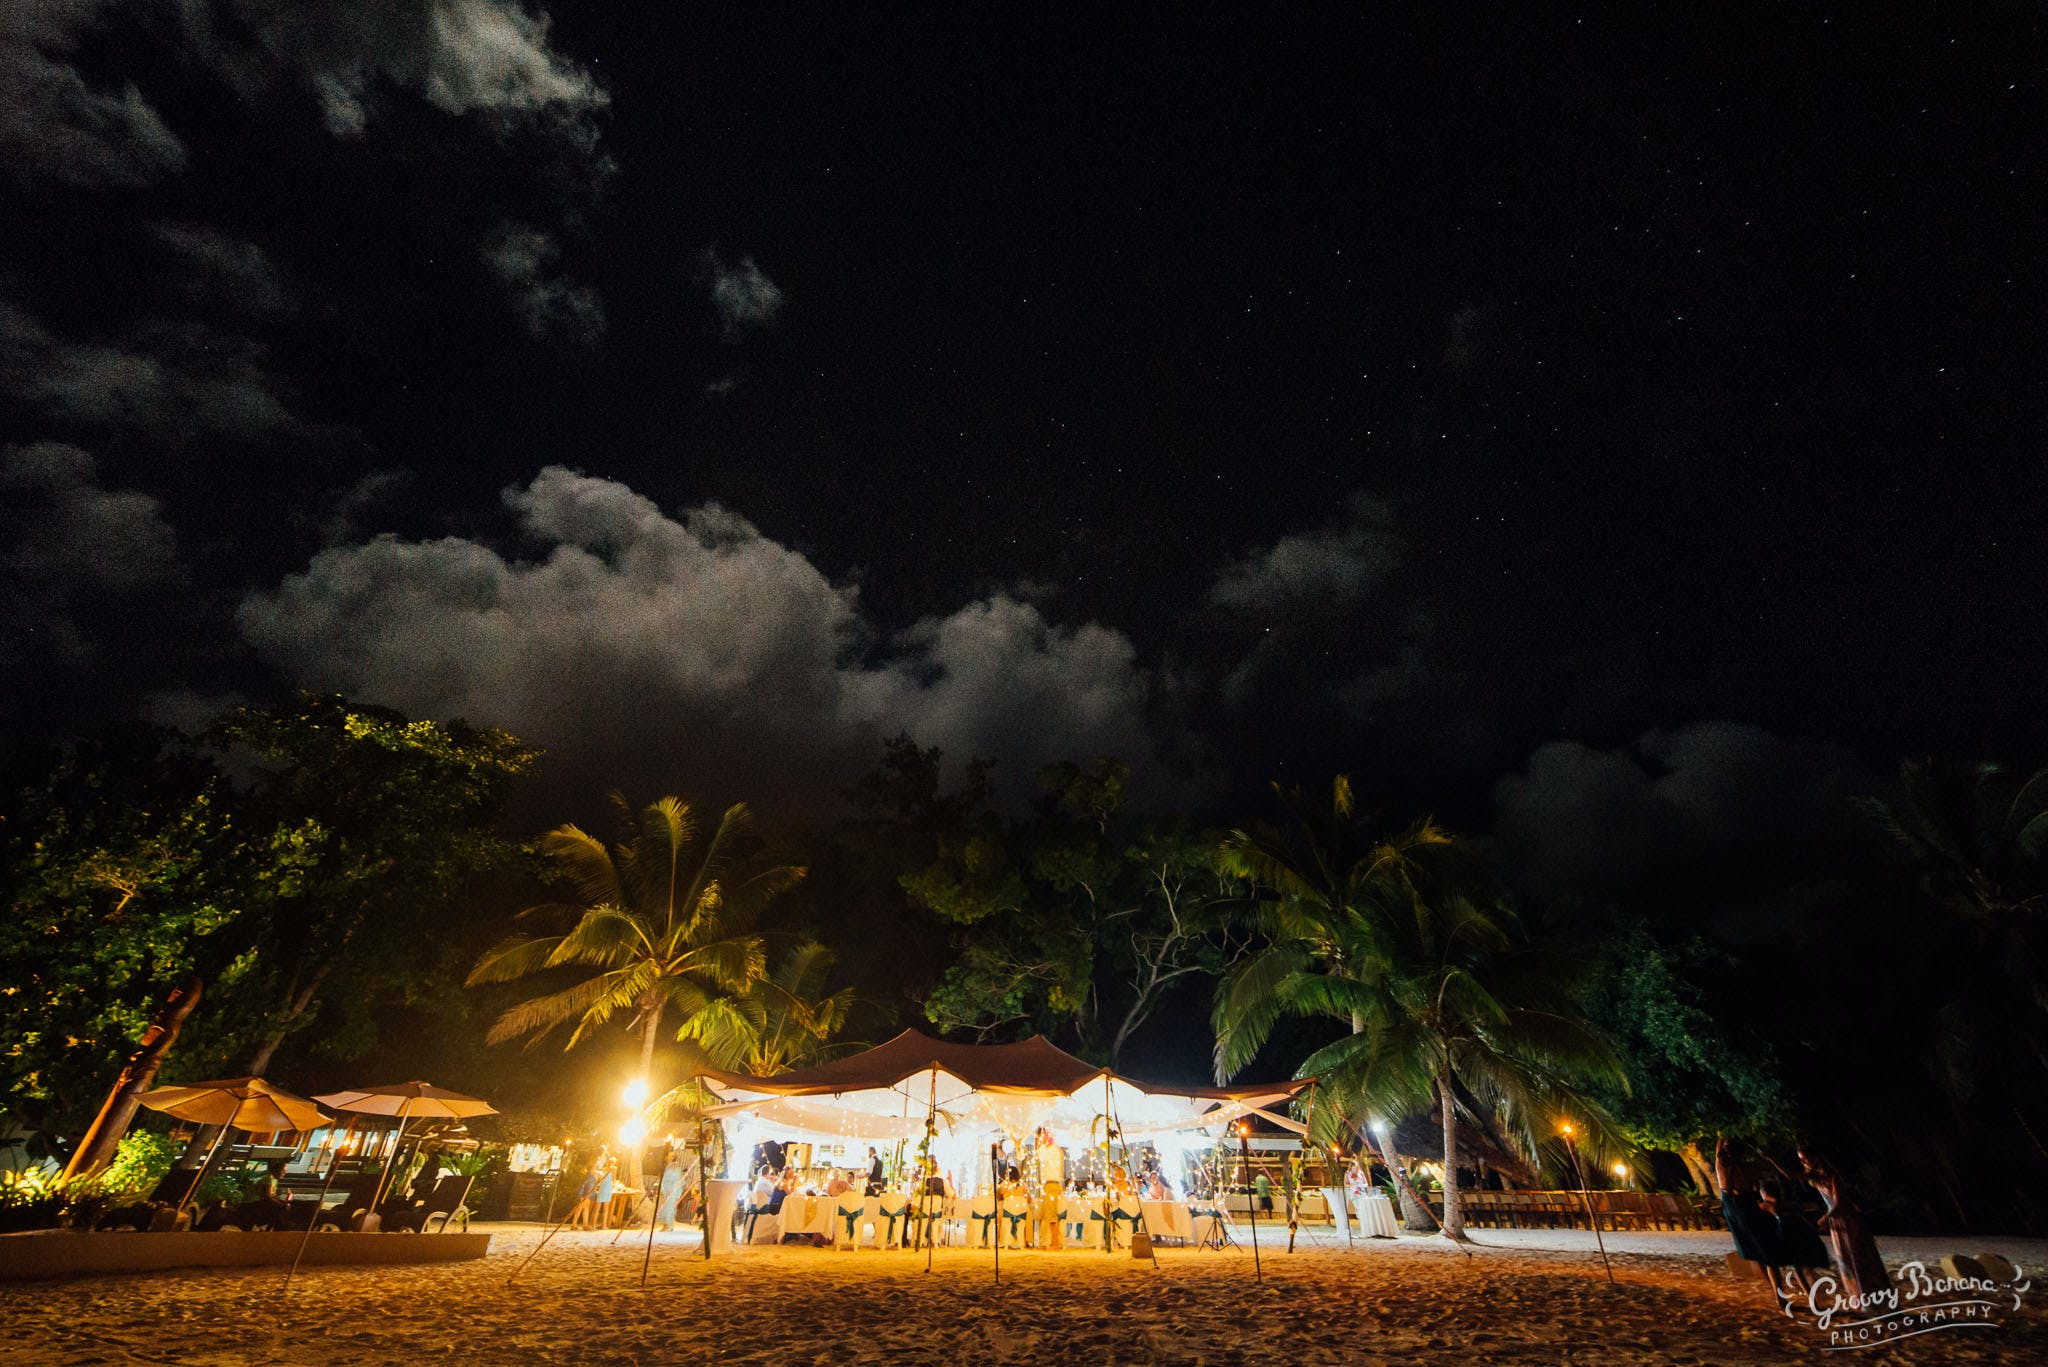 Calypso Beach Wedding Reception #erakorbeachweddings #weddingreceptionthebeachsouthpacific #Vanuatutropicalbeachweddings